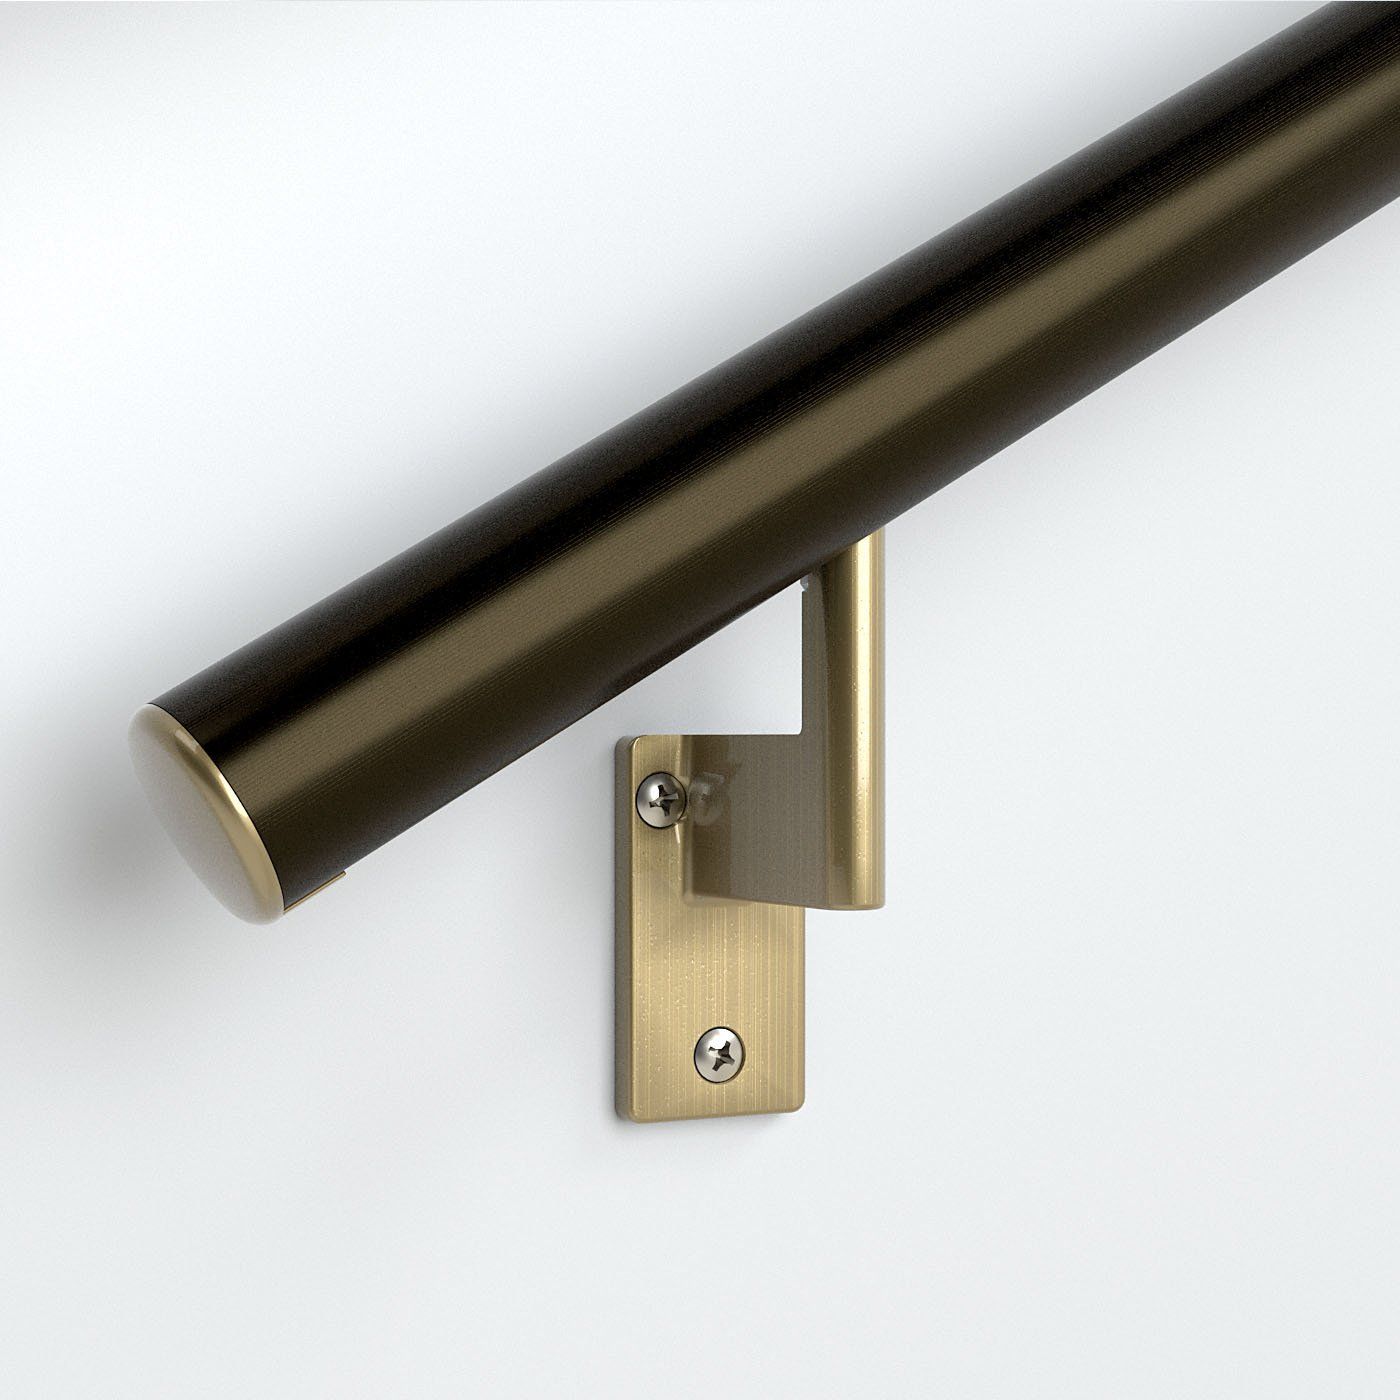 6ft. Handrail - Architectural Bronze Anodized Aluminum with 4 Antique Brass Wall Brackets and Endcaps - 1.6'' Round - Complete Kit by Promenaid